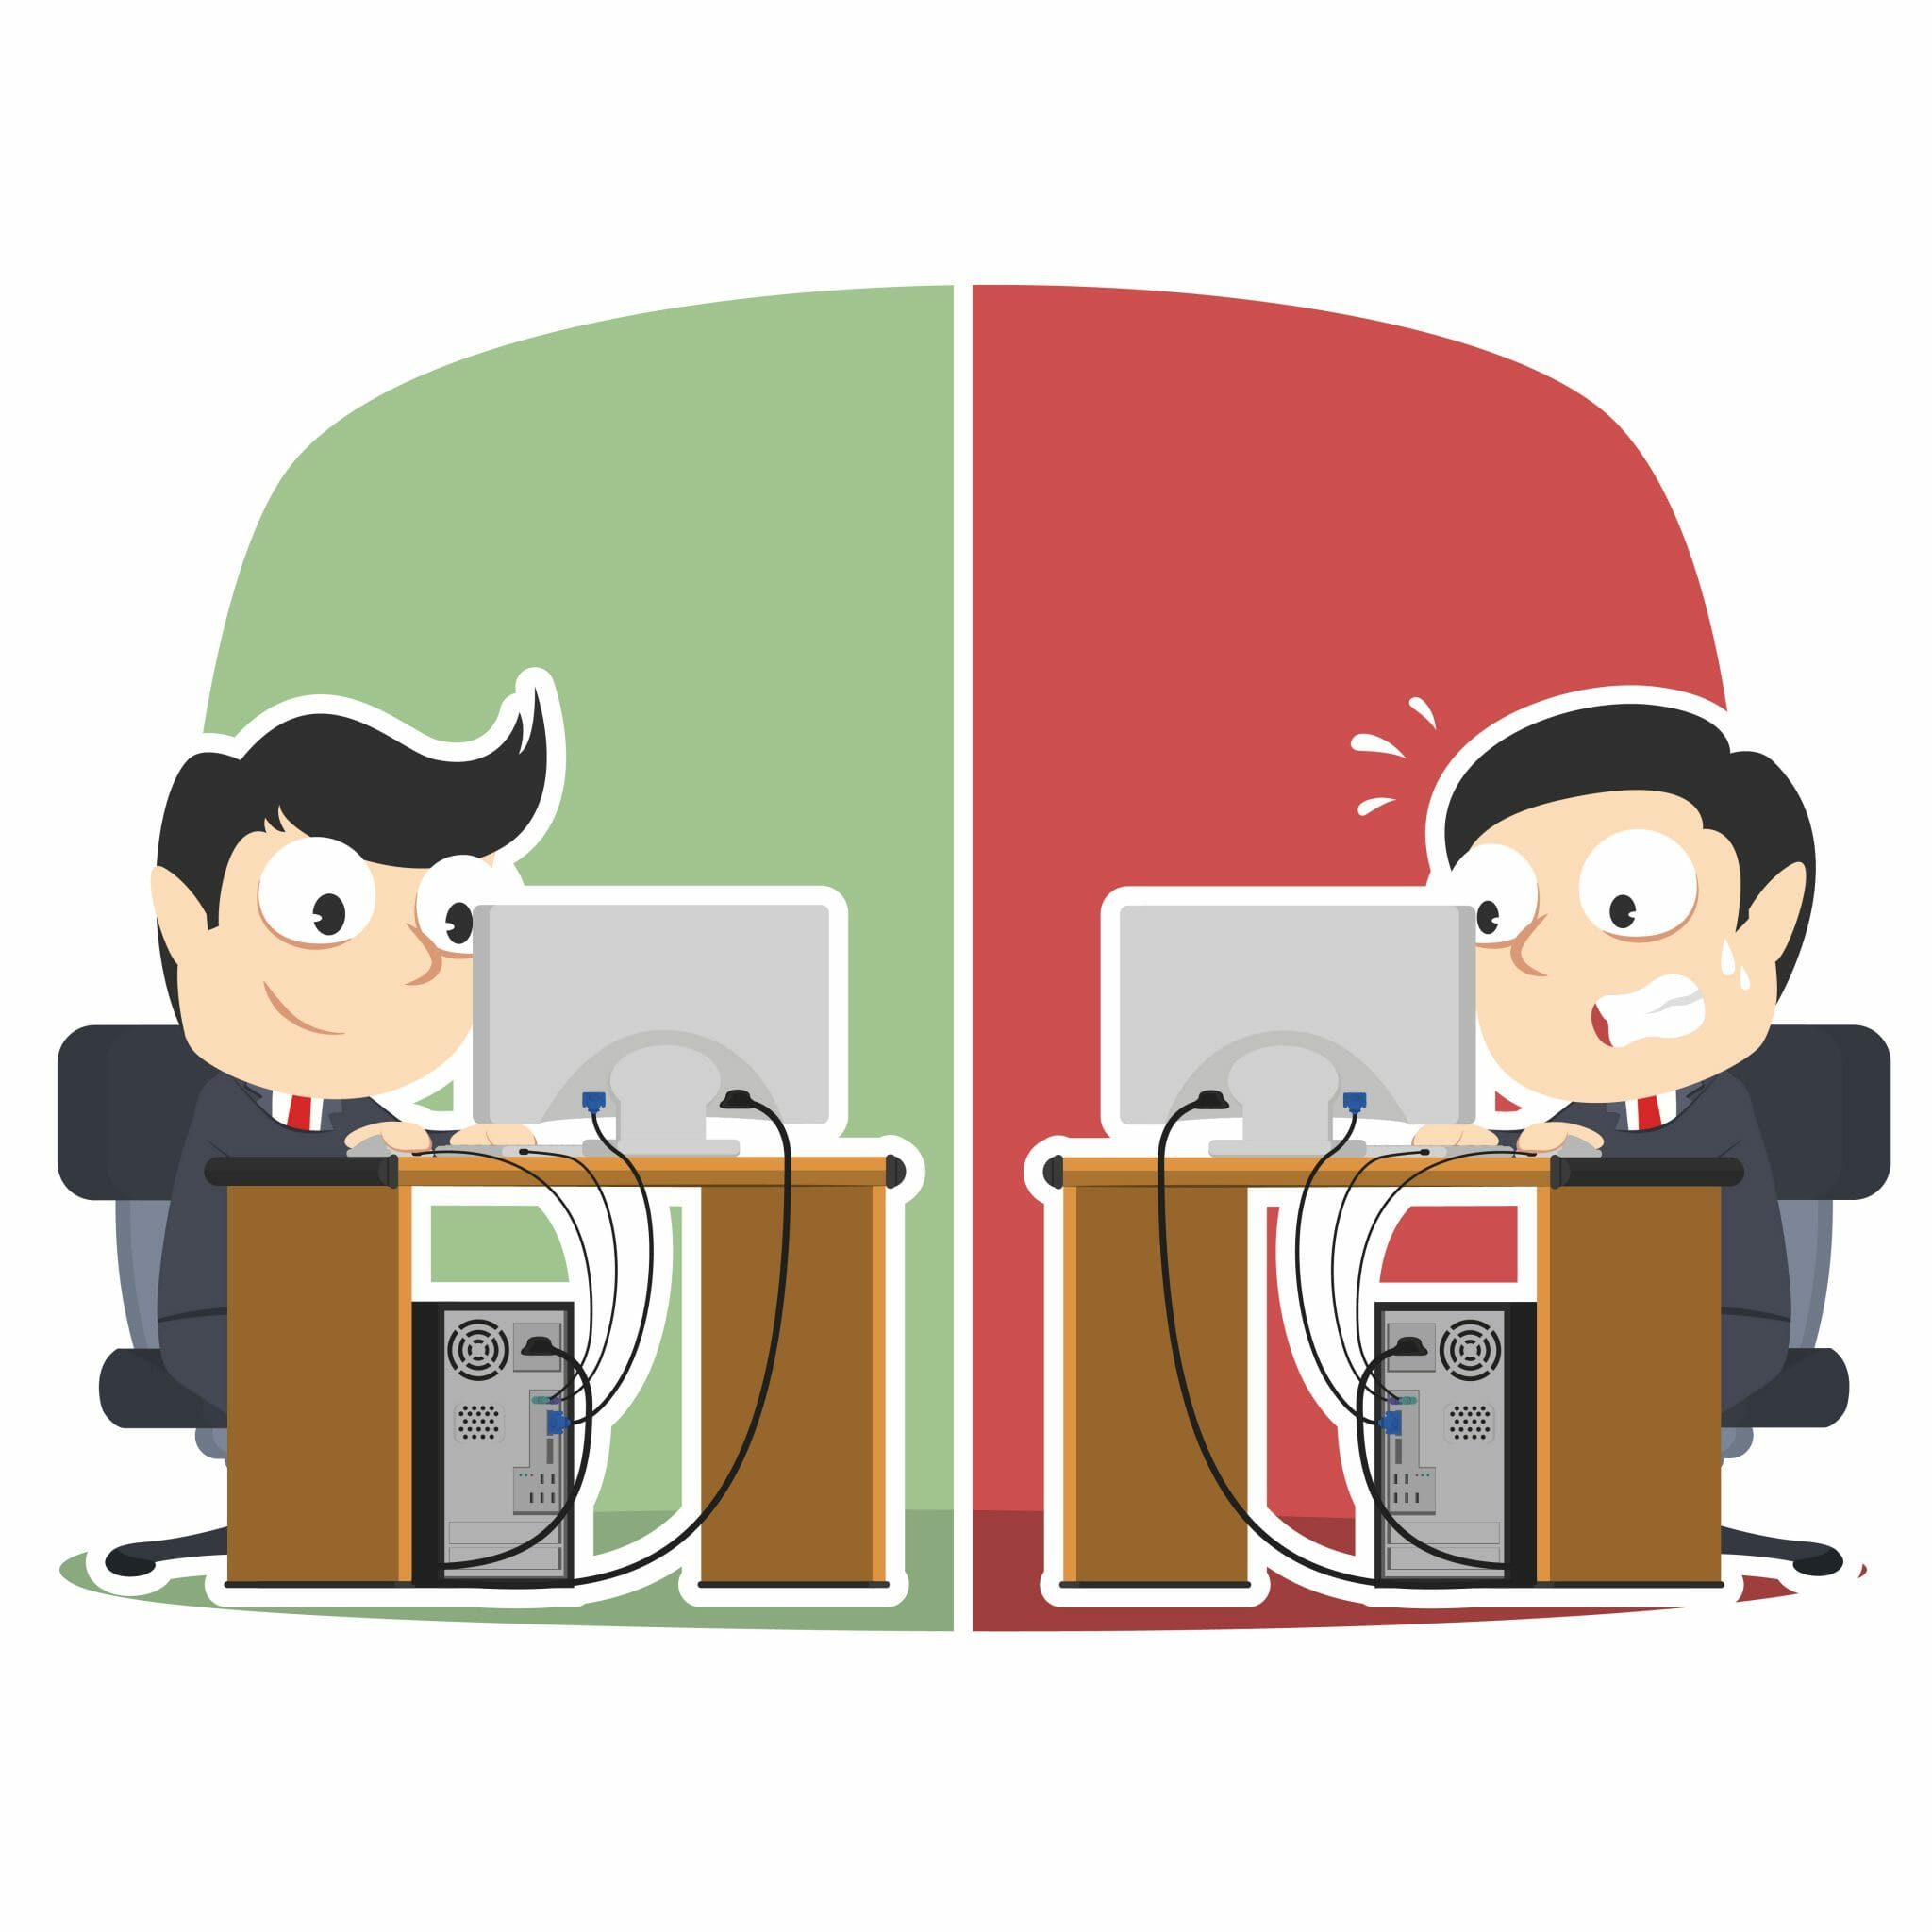 Two men at a computer working in a vector art style